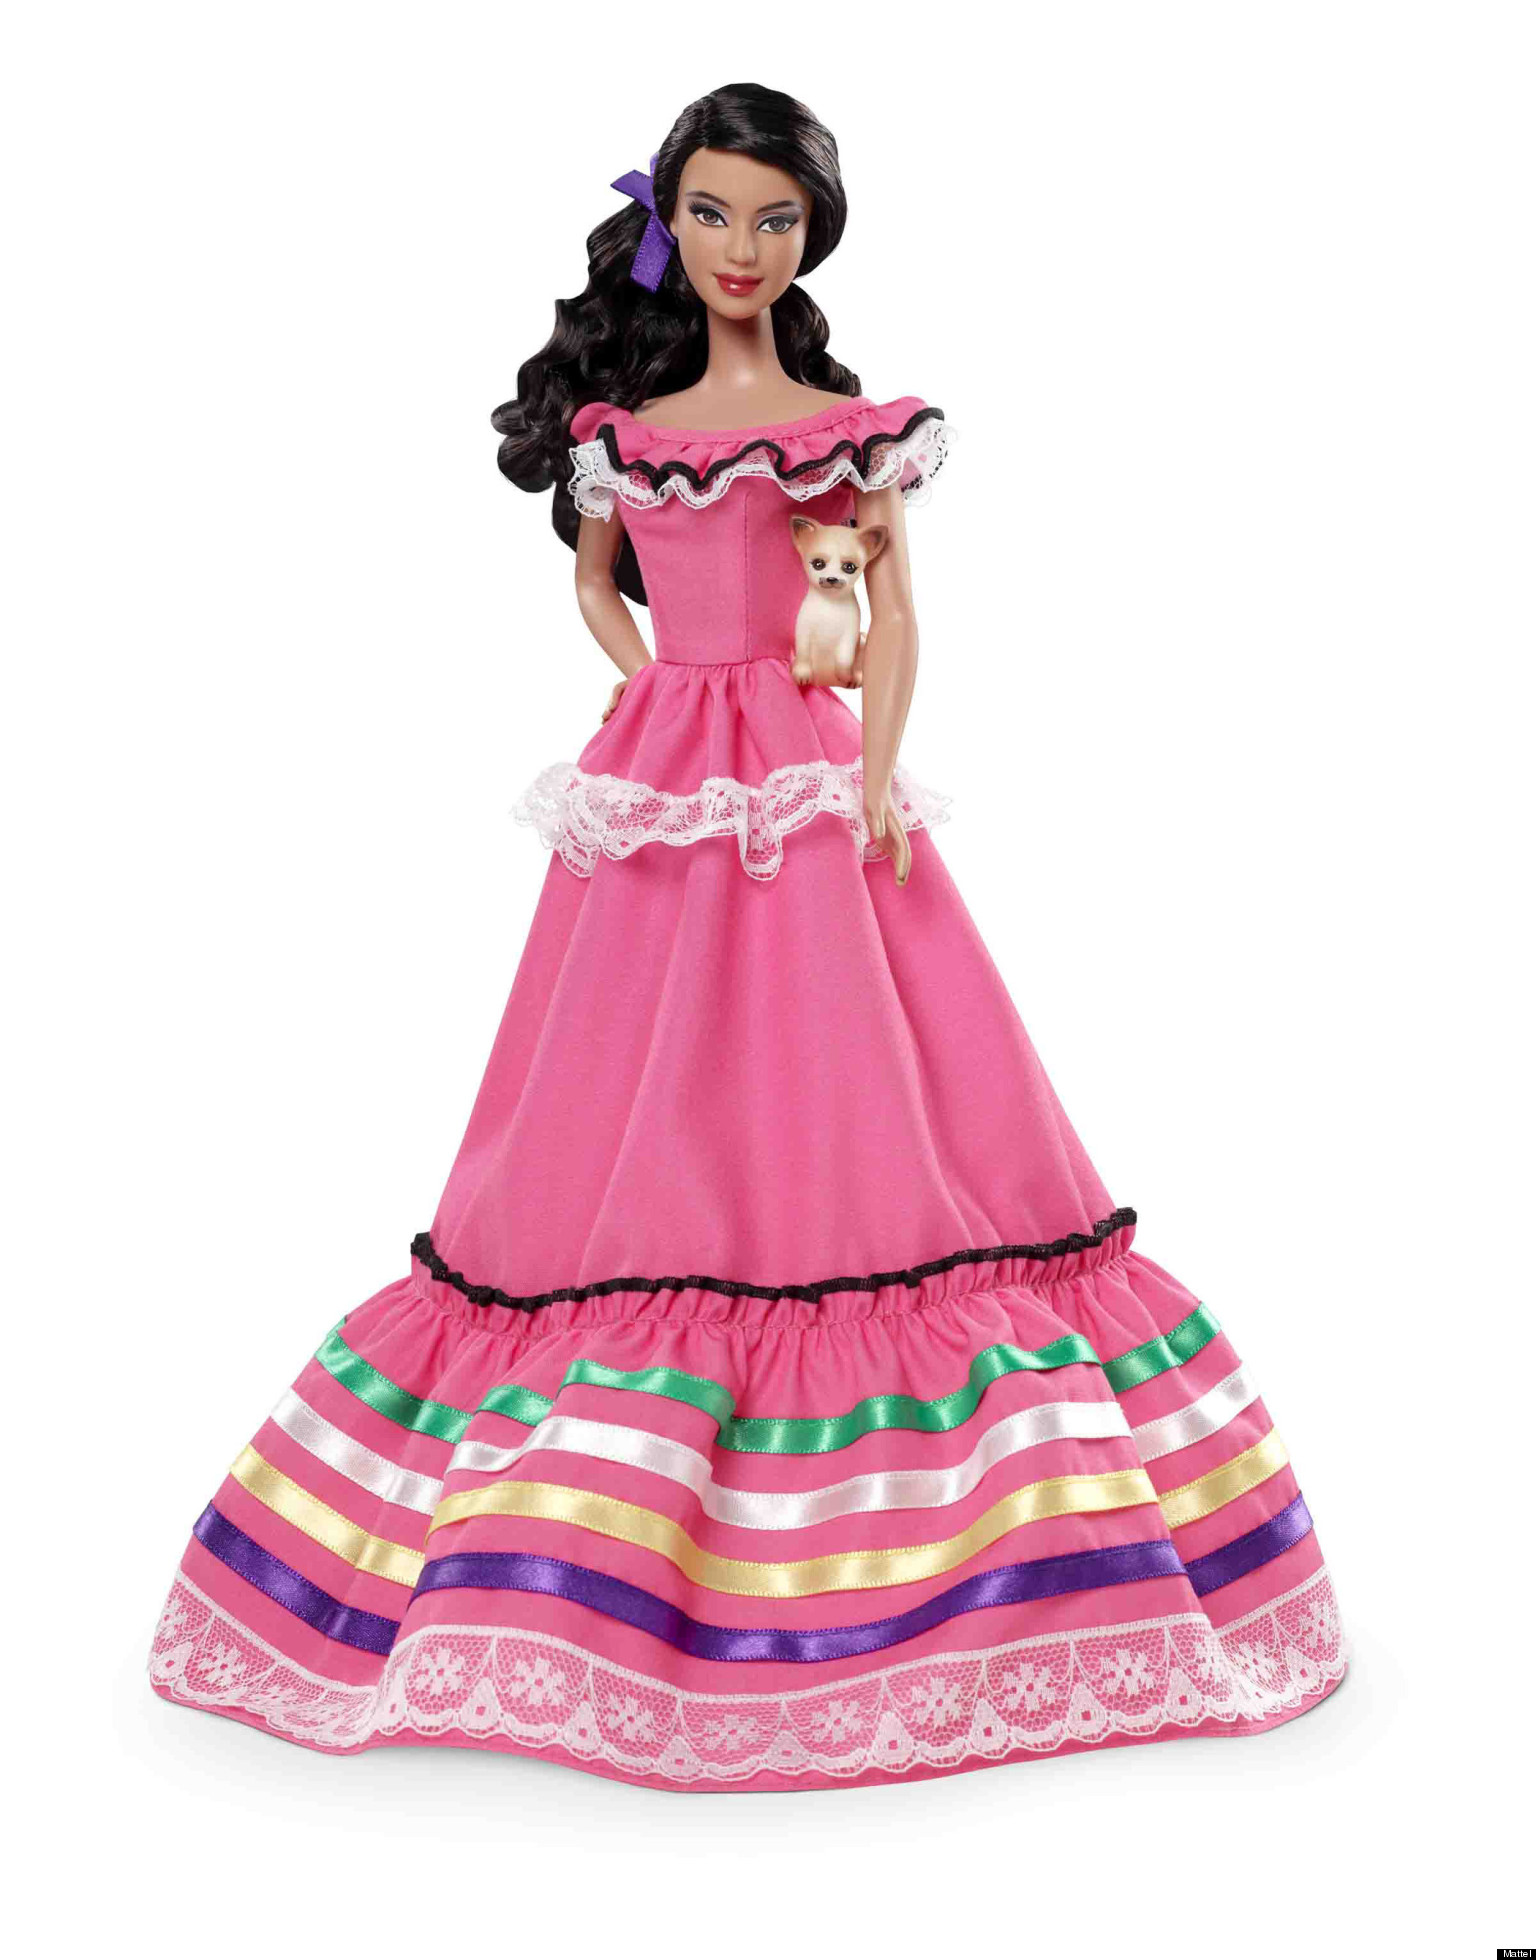 Best Barbie Dolls And Toys : Mexico barbie from dolls of the world collection